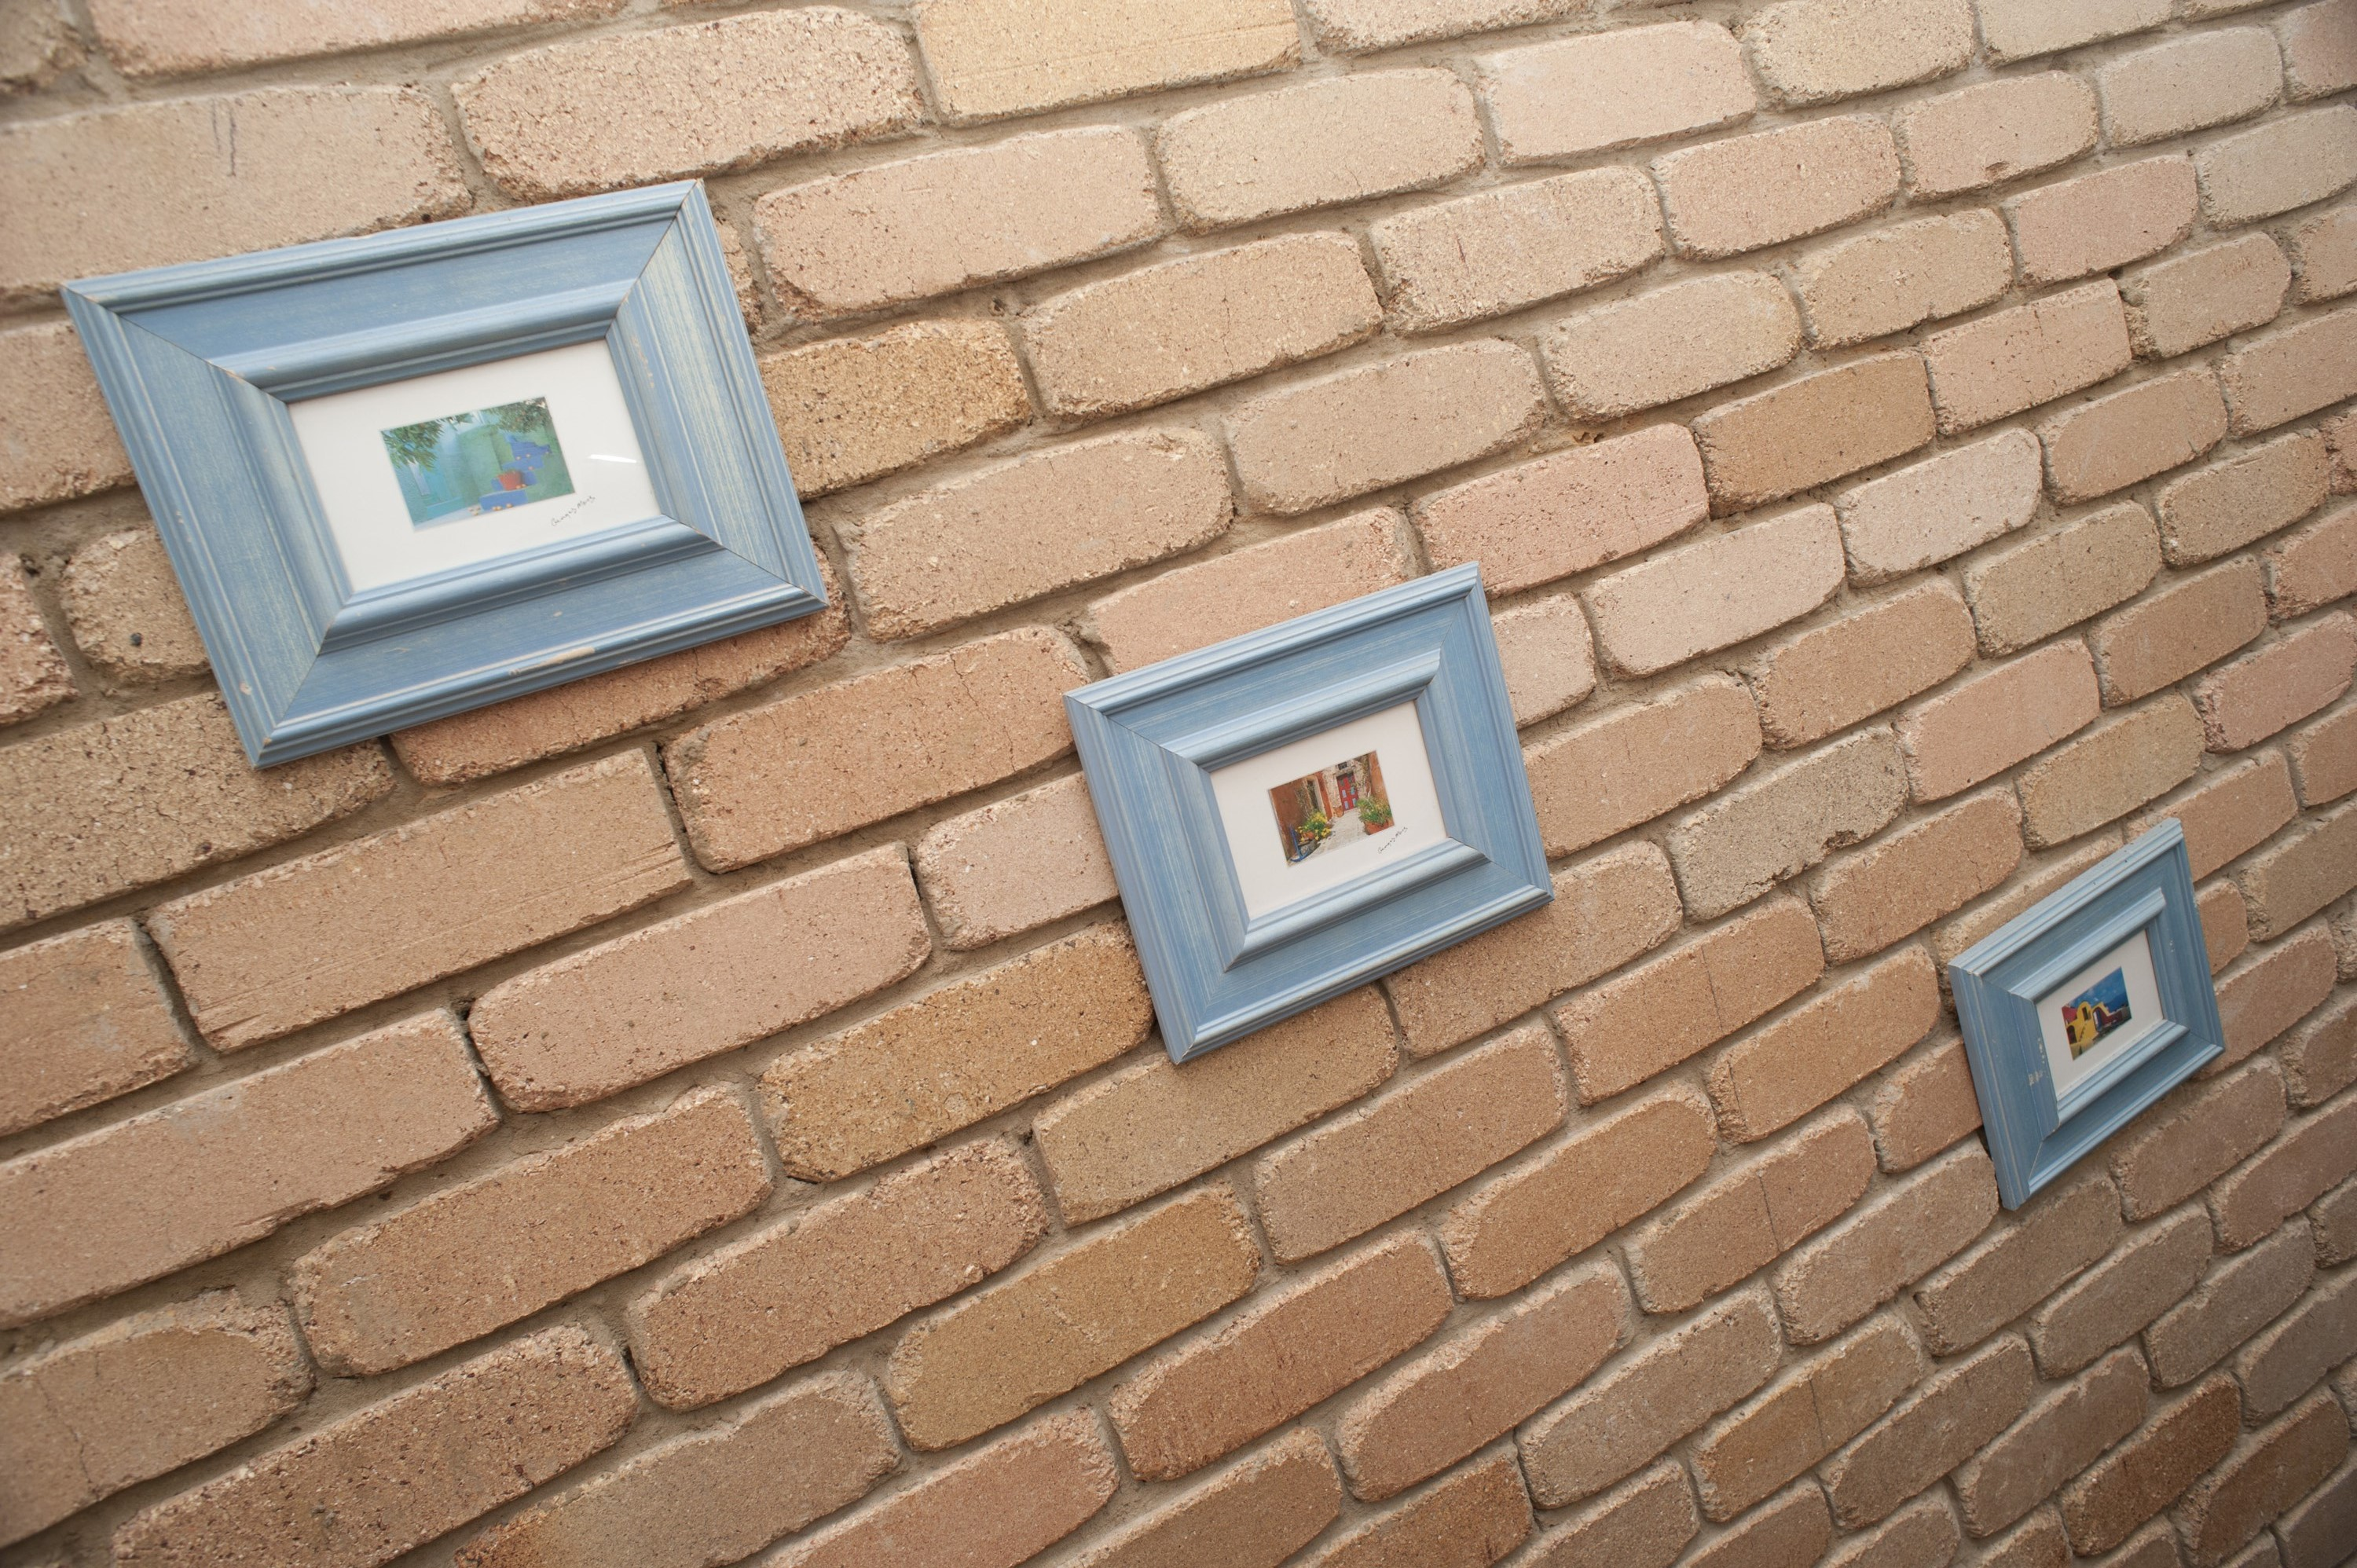 Series of three wall pictures in a diagonal display on a face brick wall taken at an oblique perspective